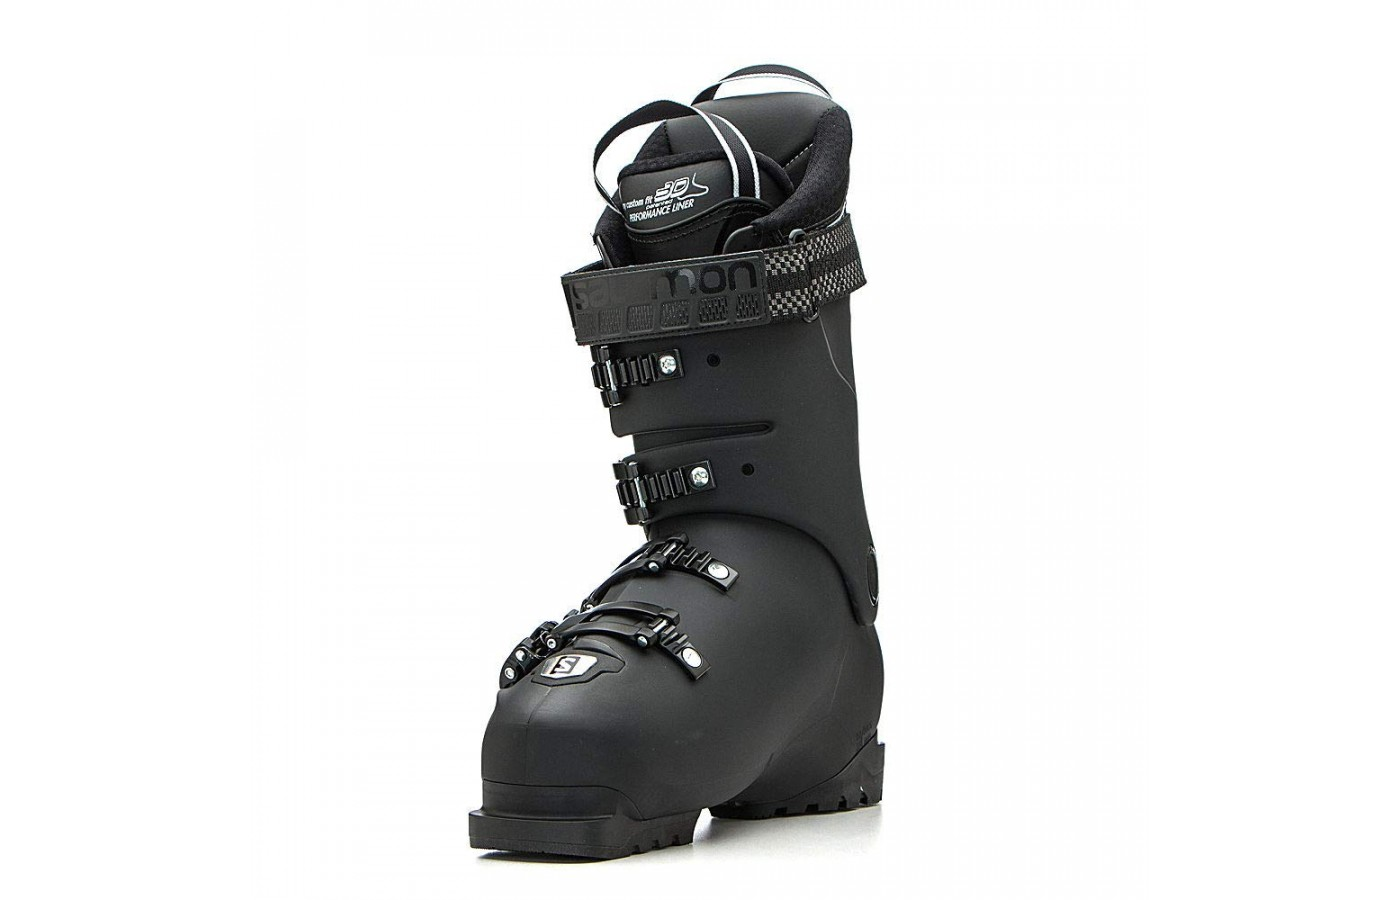 The Salomon X Pro 100 also offers a pre-shaped liner for better power distribution and comfort while riding.